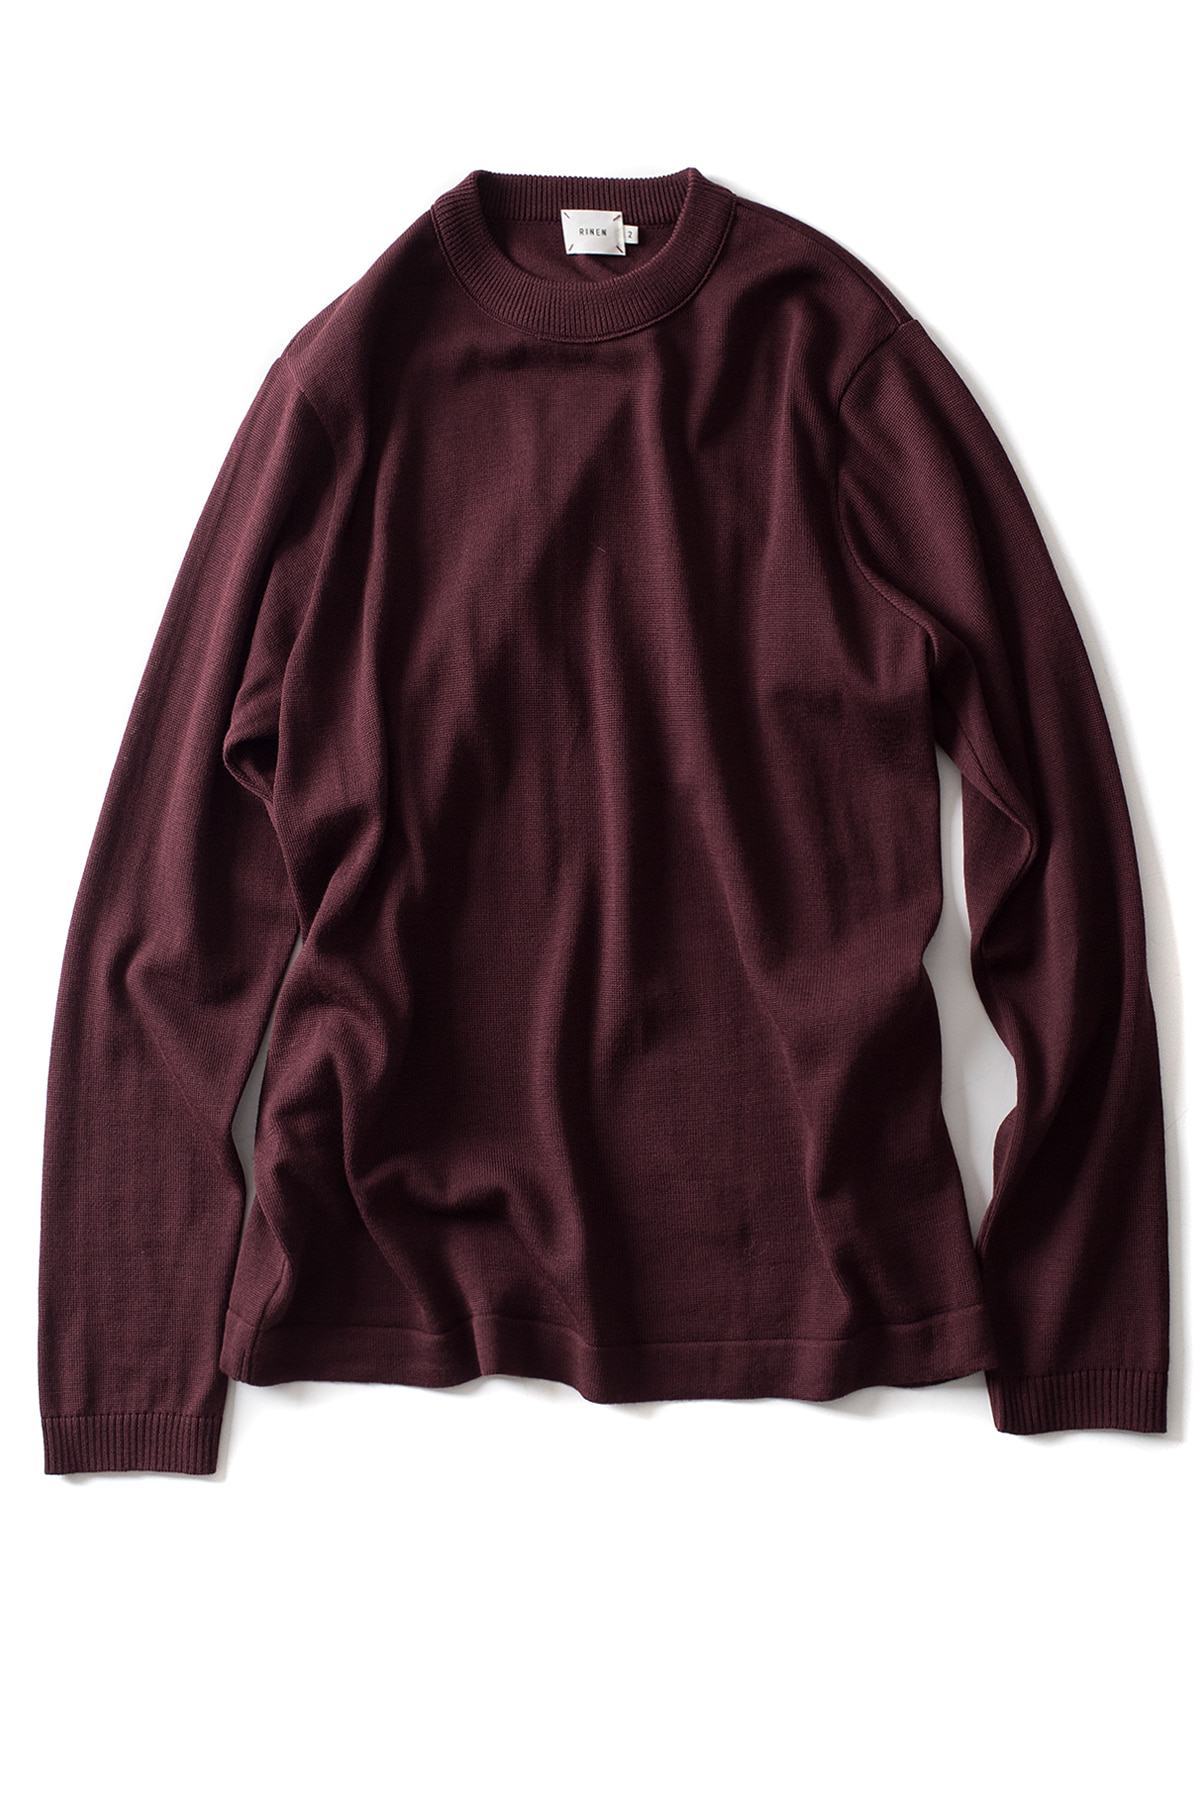 RINEN : Wool Crewneck (Wine)